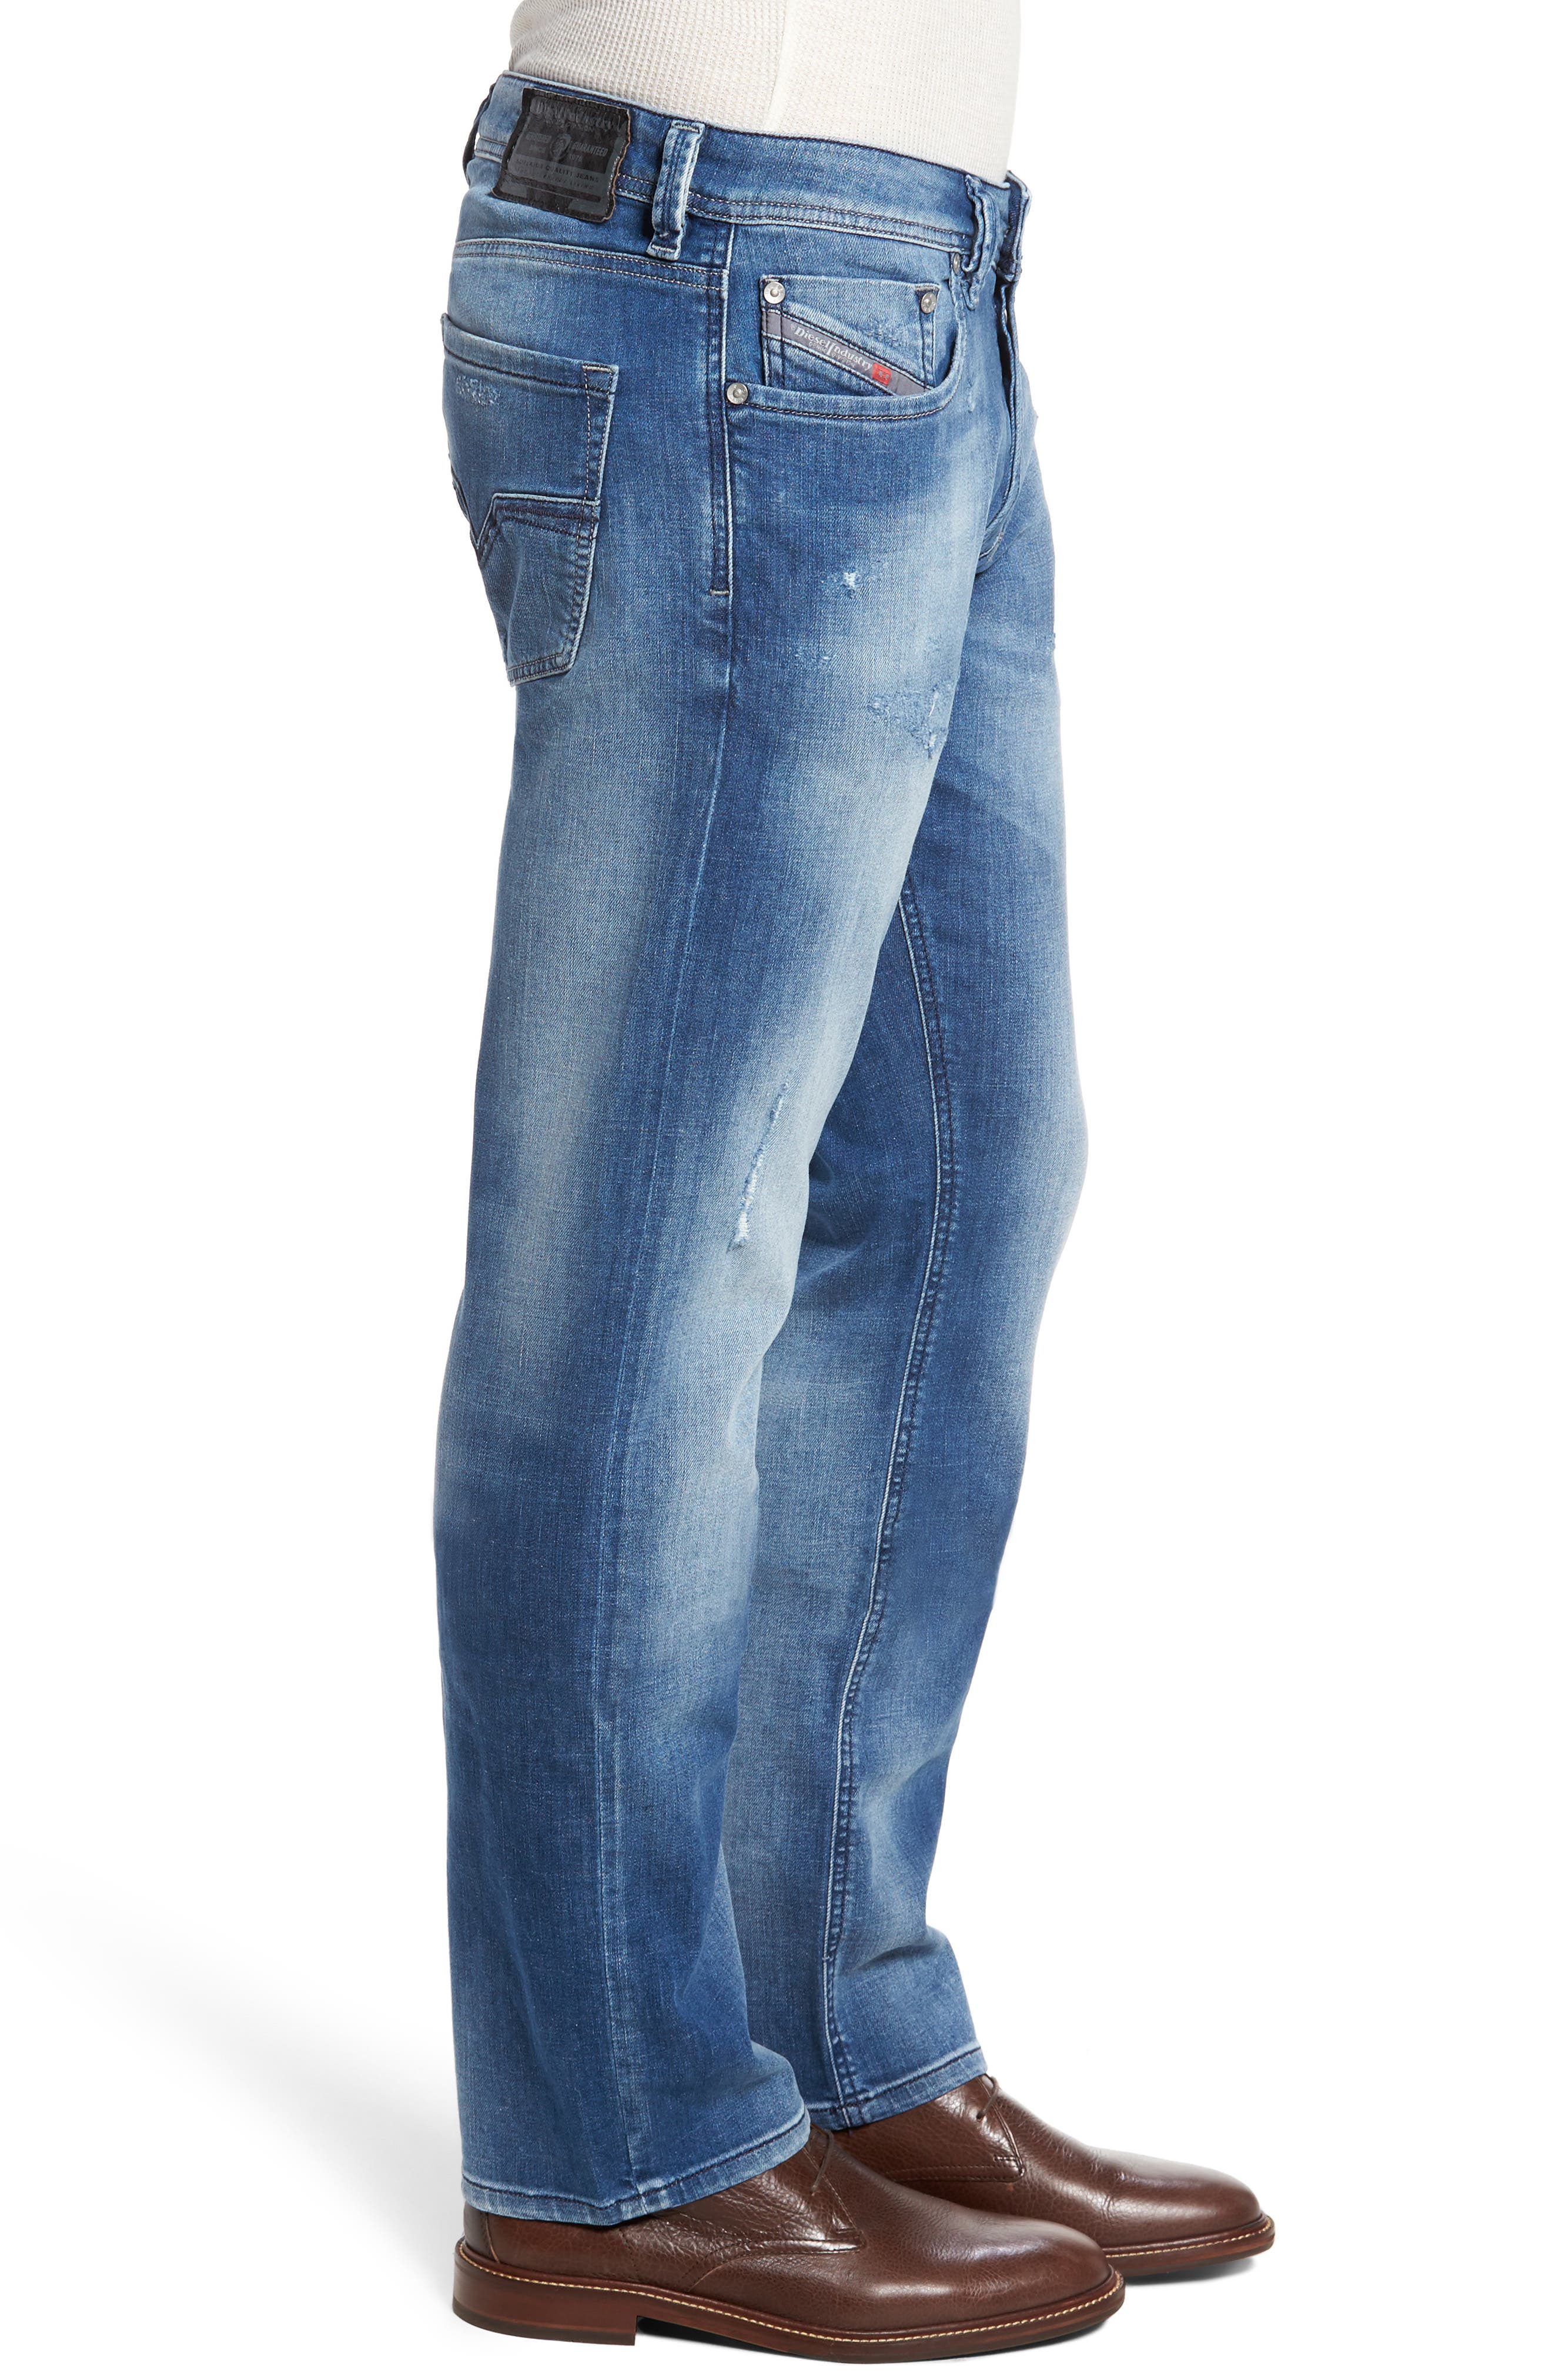 Larkee Relaxed Fit Jeans,                             Alternate thumbnail 3, color,                             084Qg